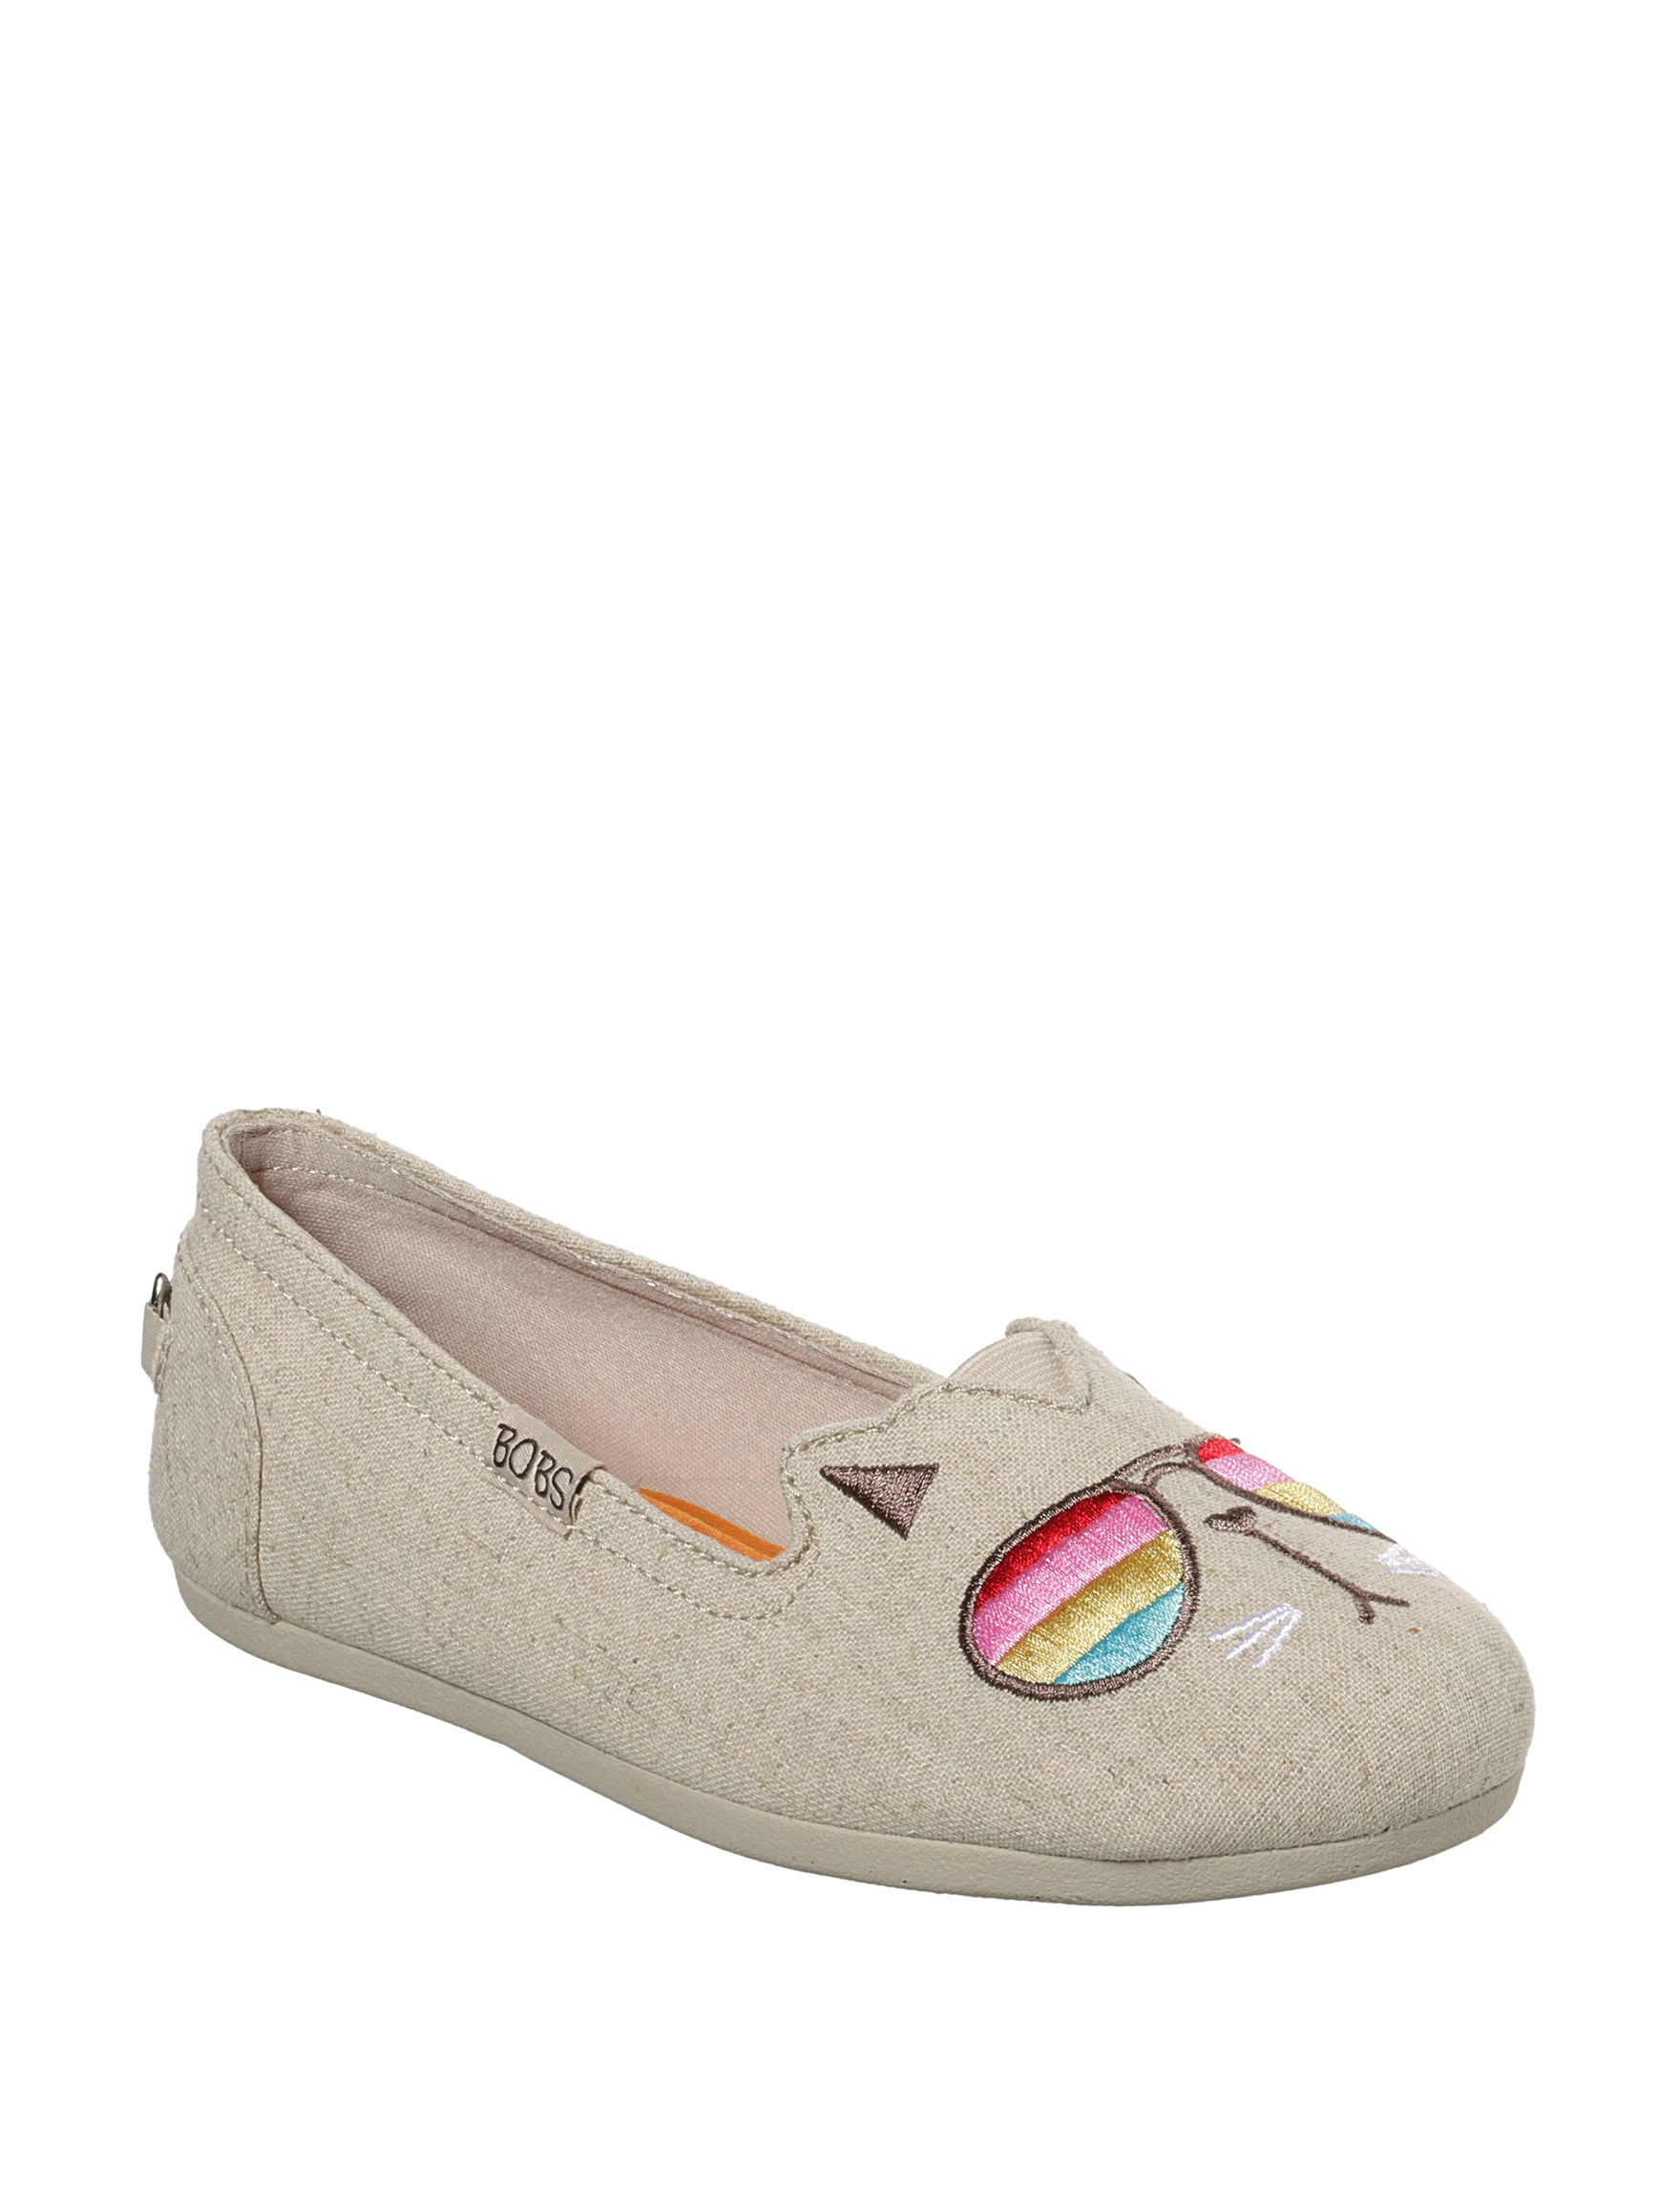 Skechers Beige Comfort Shoes